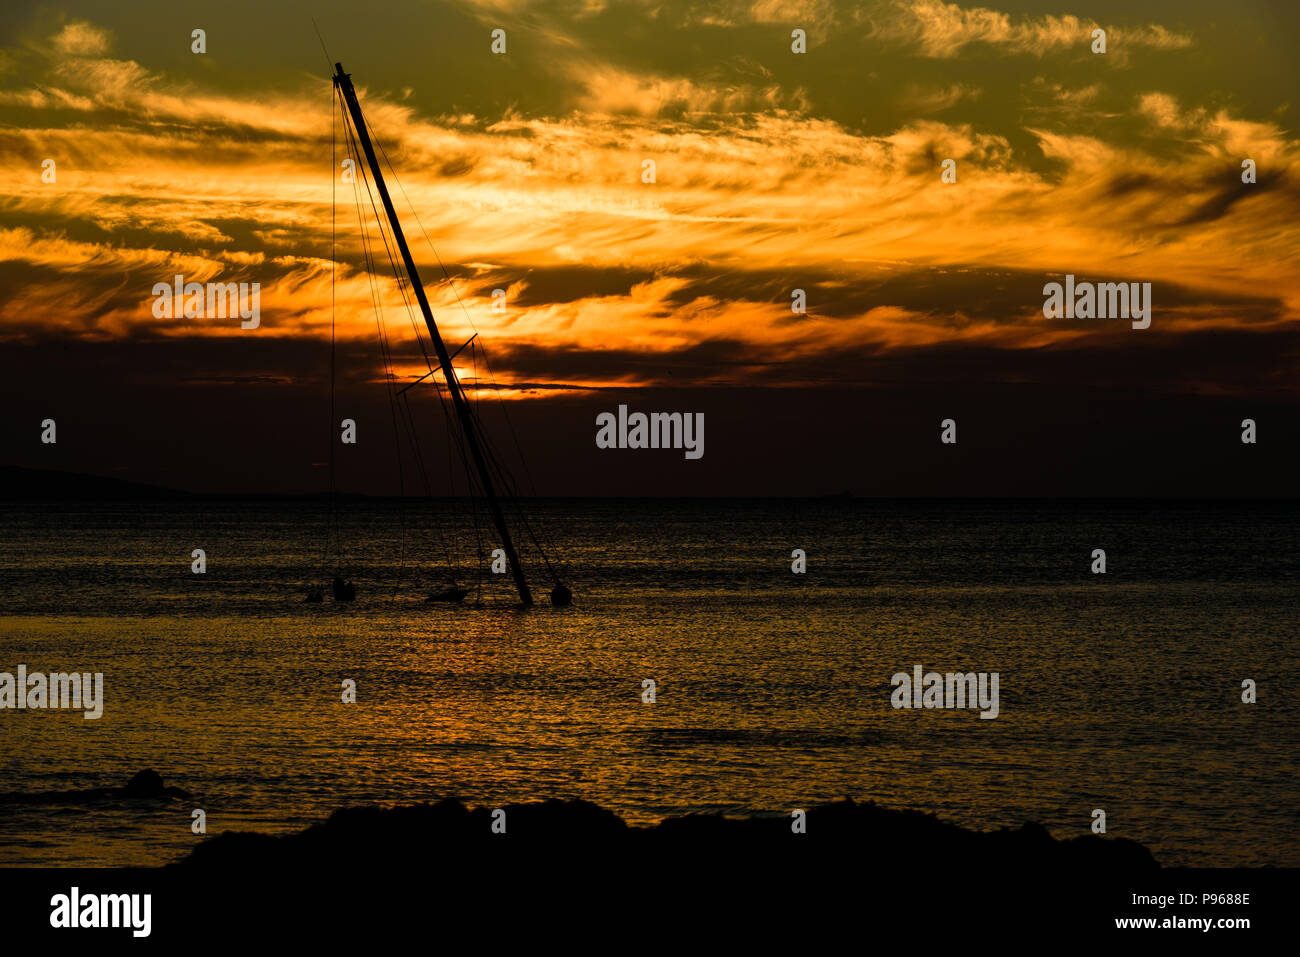 Sunset over a yacht sunk at Penmon lighthouse, Anglesey - Stock Image